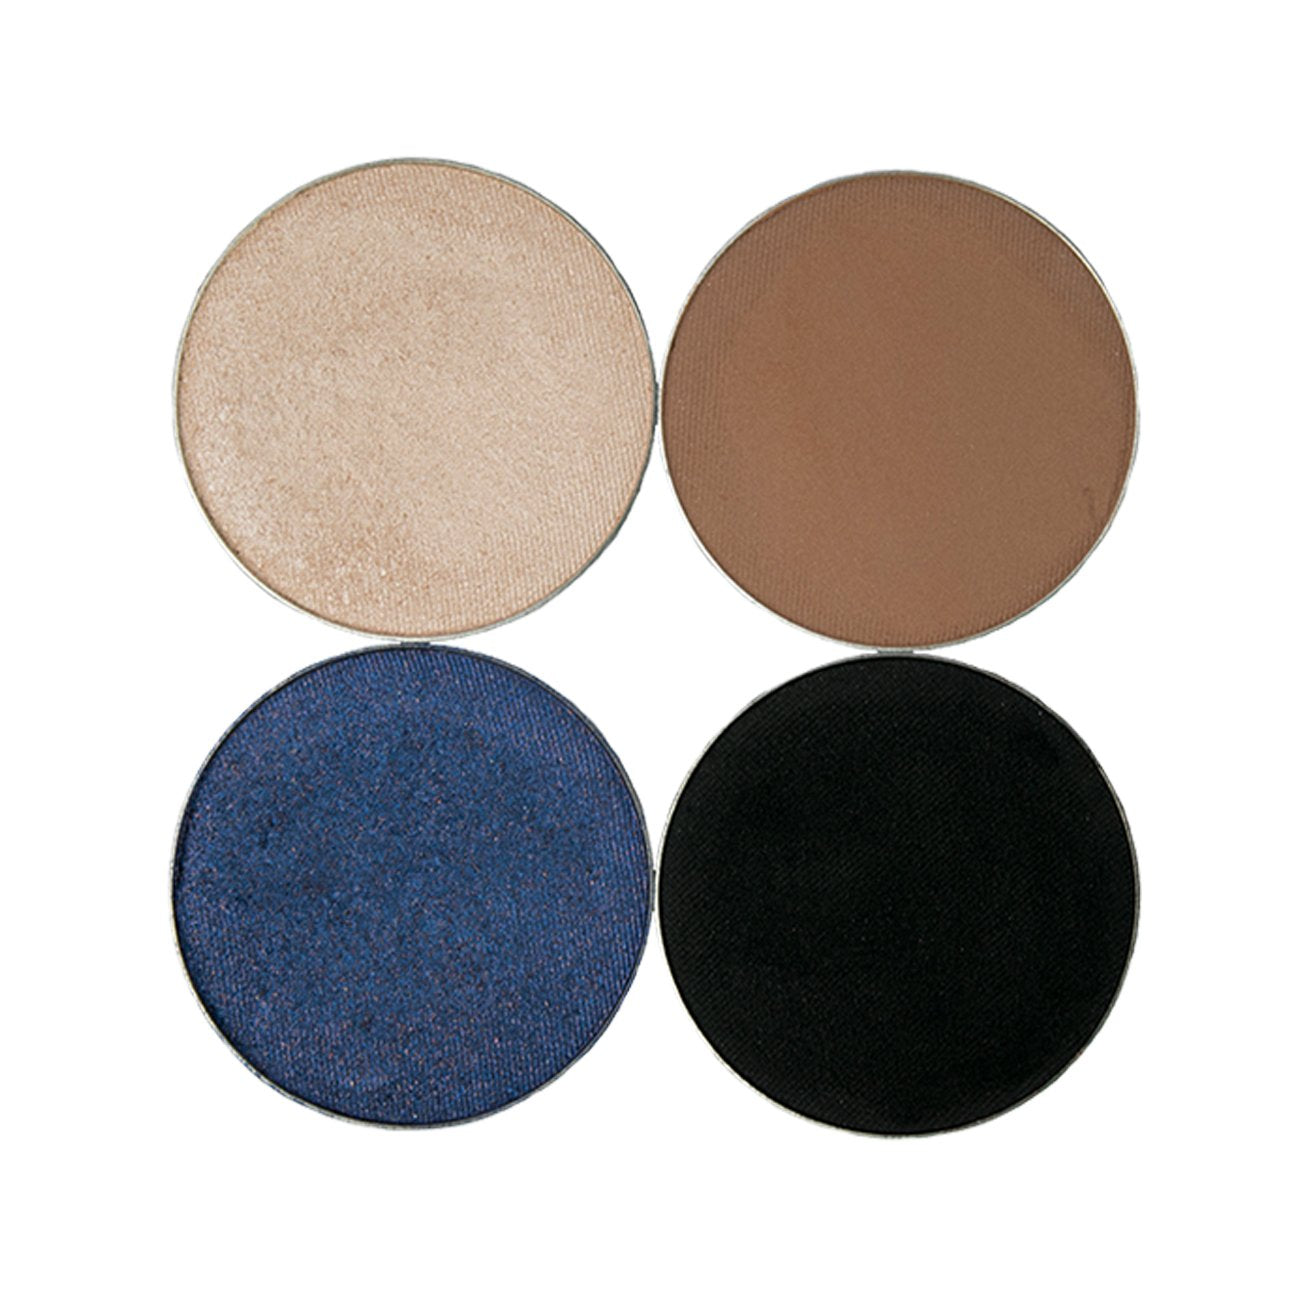 Eyeshadow Pans larger than MAC eyeshadows